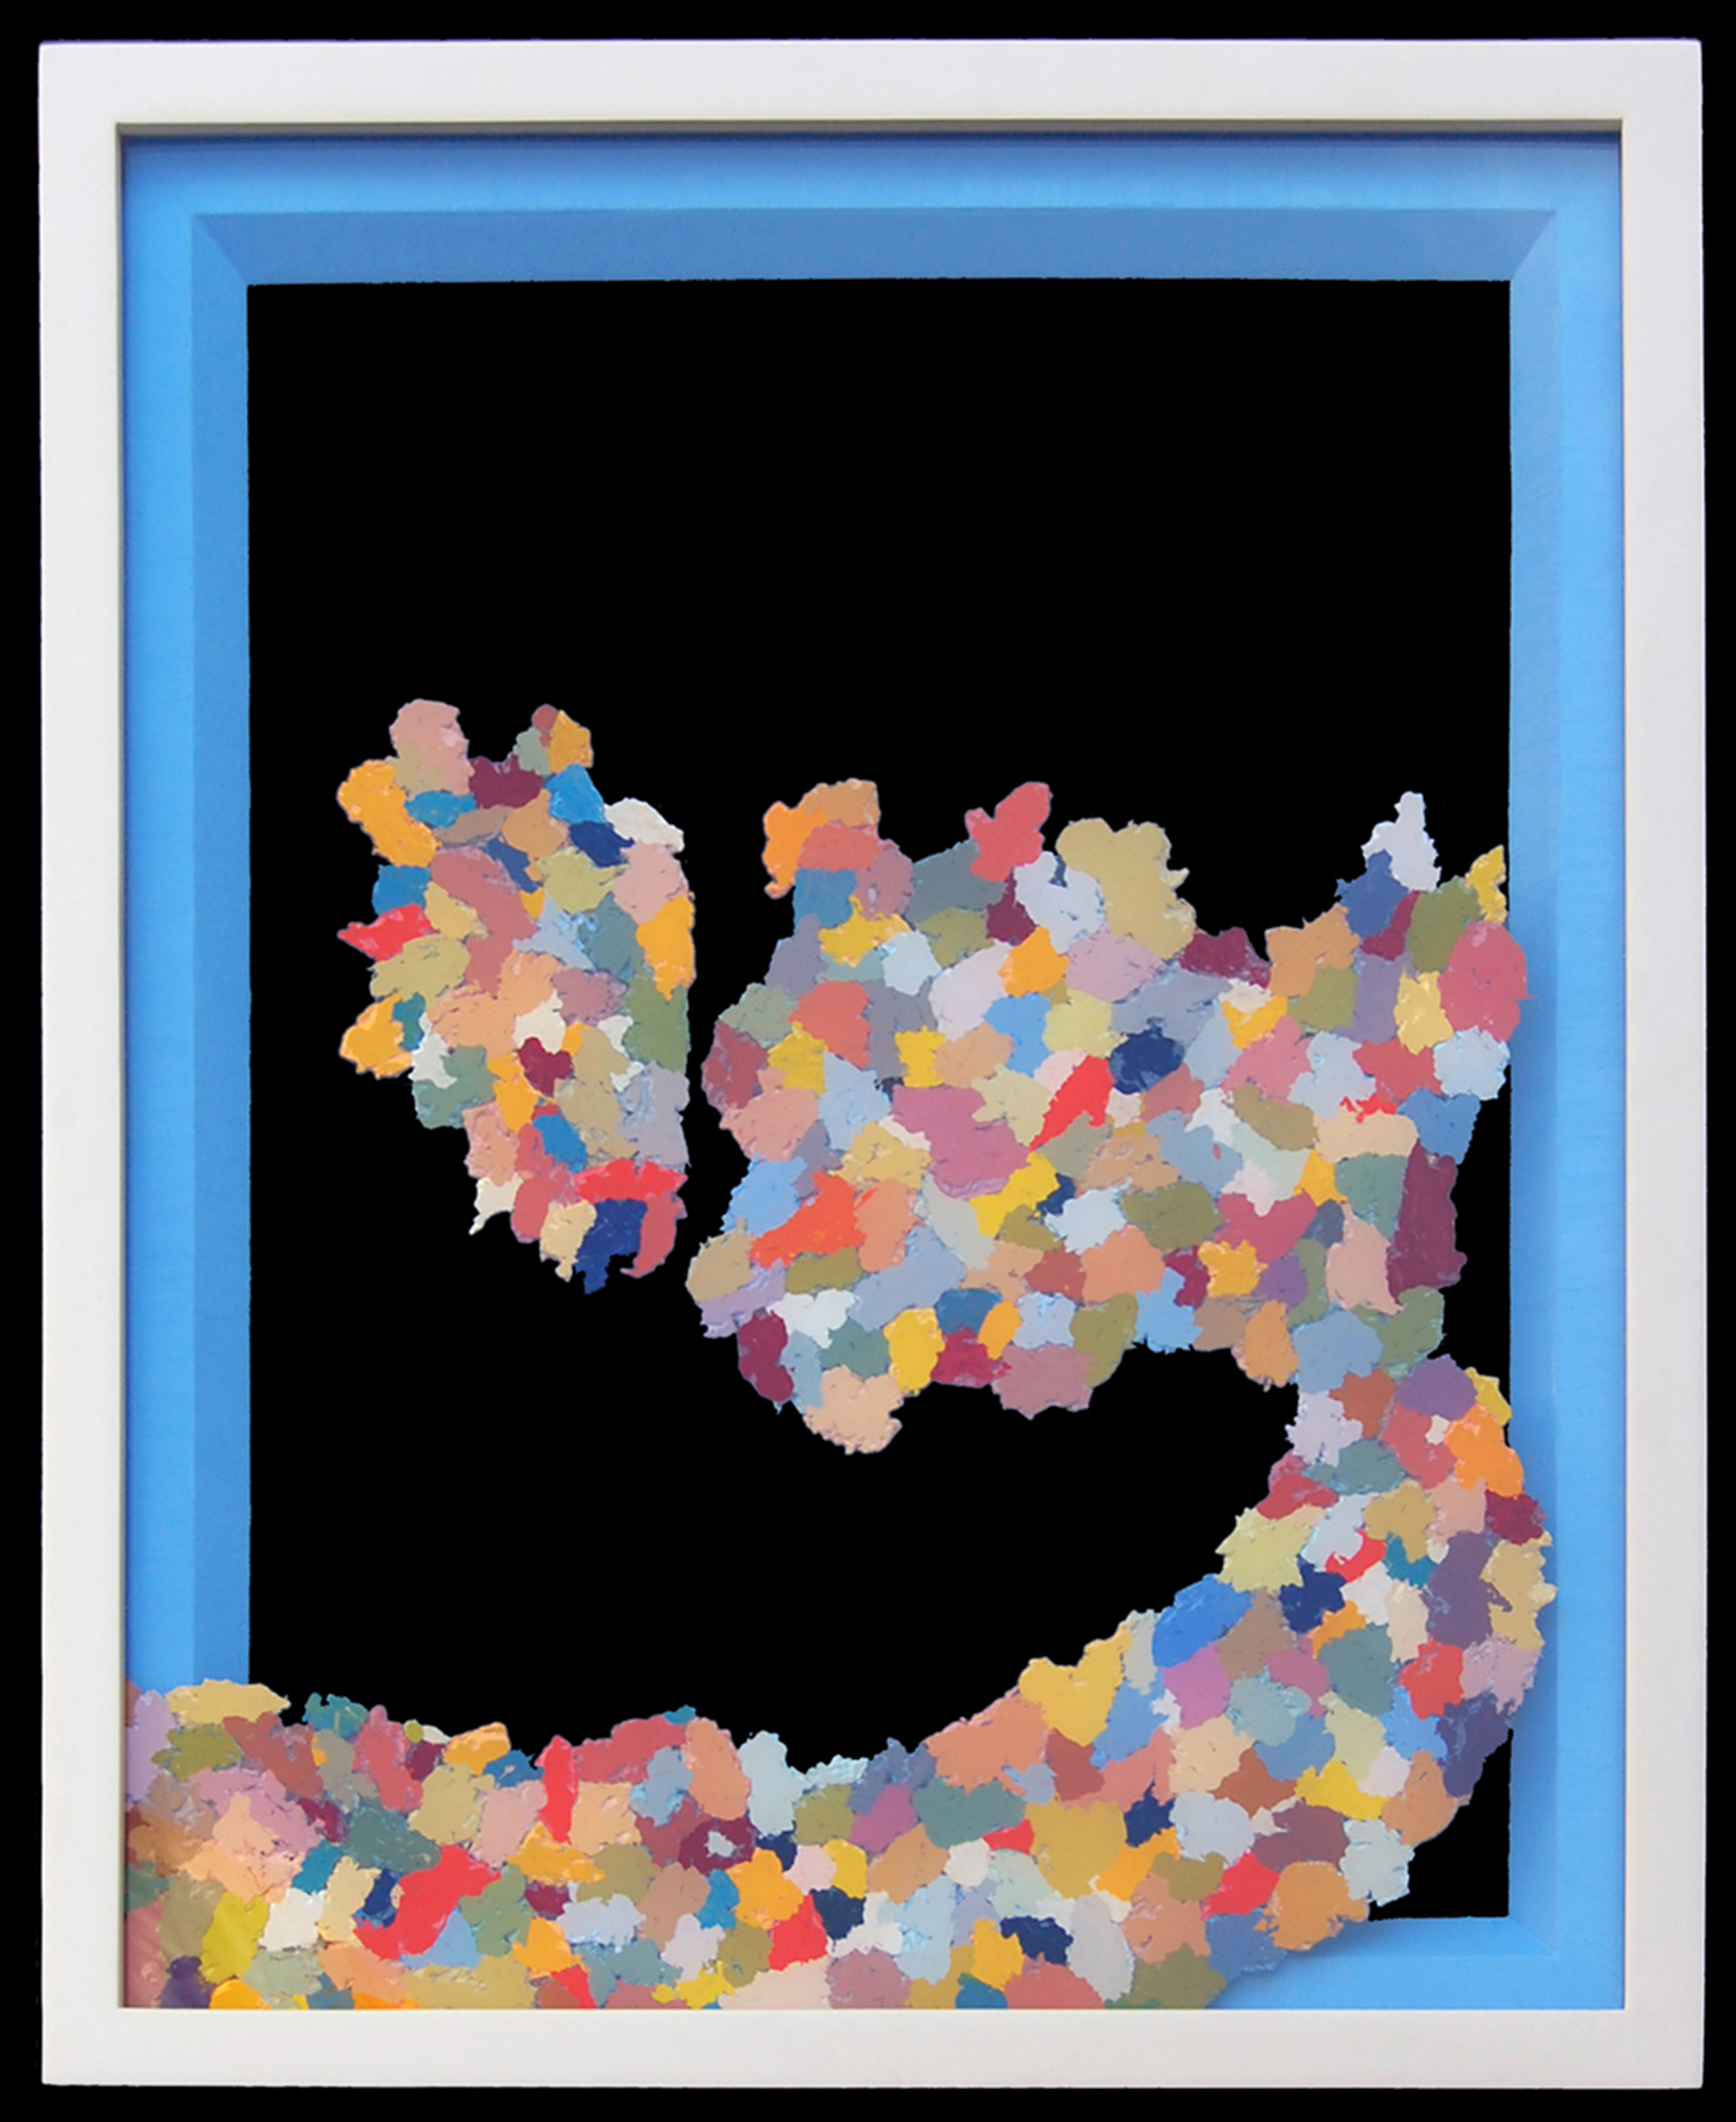 AP V (9/11), 2008  |   26 x 21 inches  |  oil on wood and plexiglas